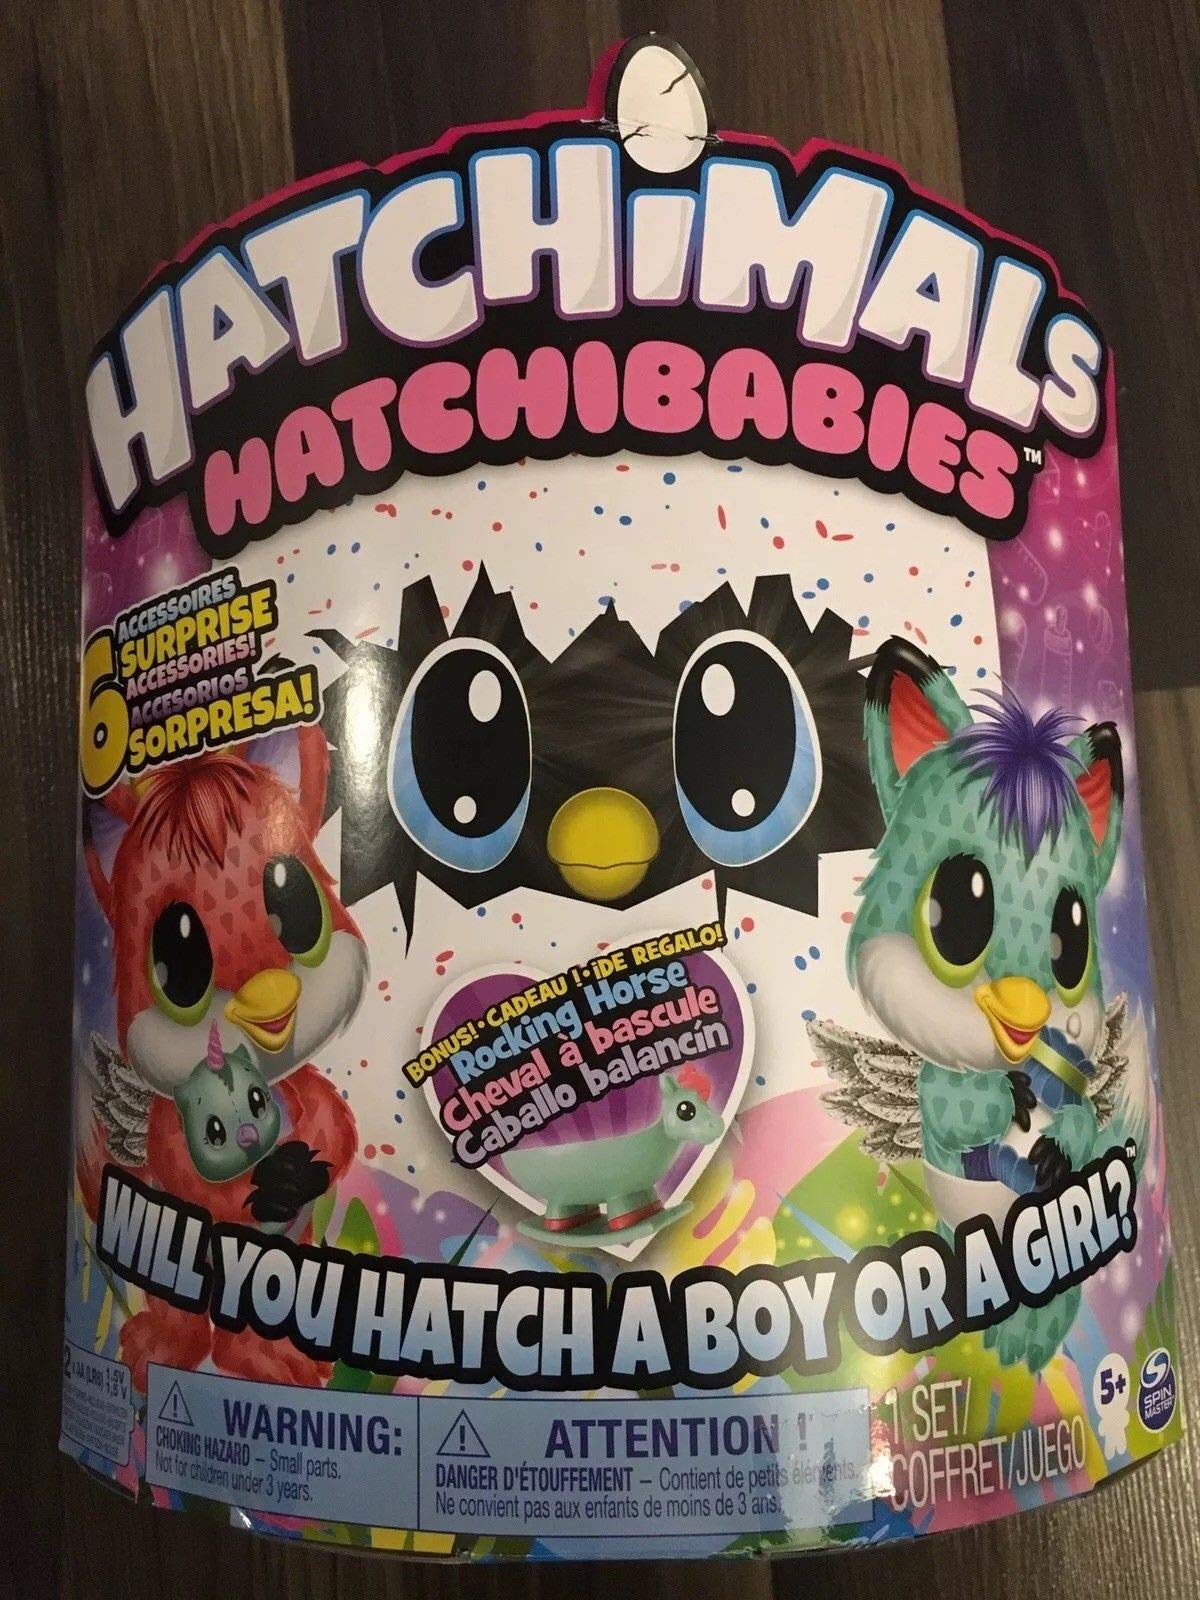 Hatchibabies FoxFin - Hatching Egg with Interactive Pet Baby (Styles May Vary) Ages 5 and Up - HOT Toy 2018 by Hatchimals (Image #5)